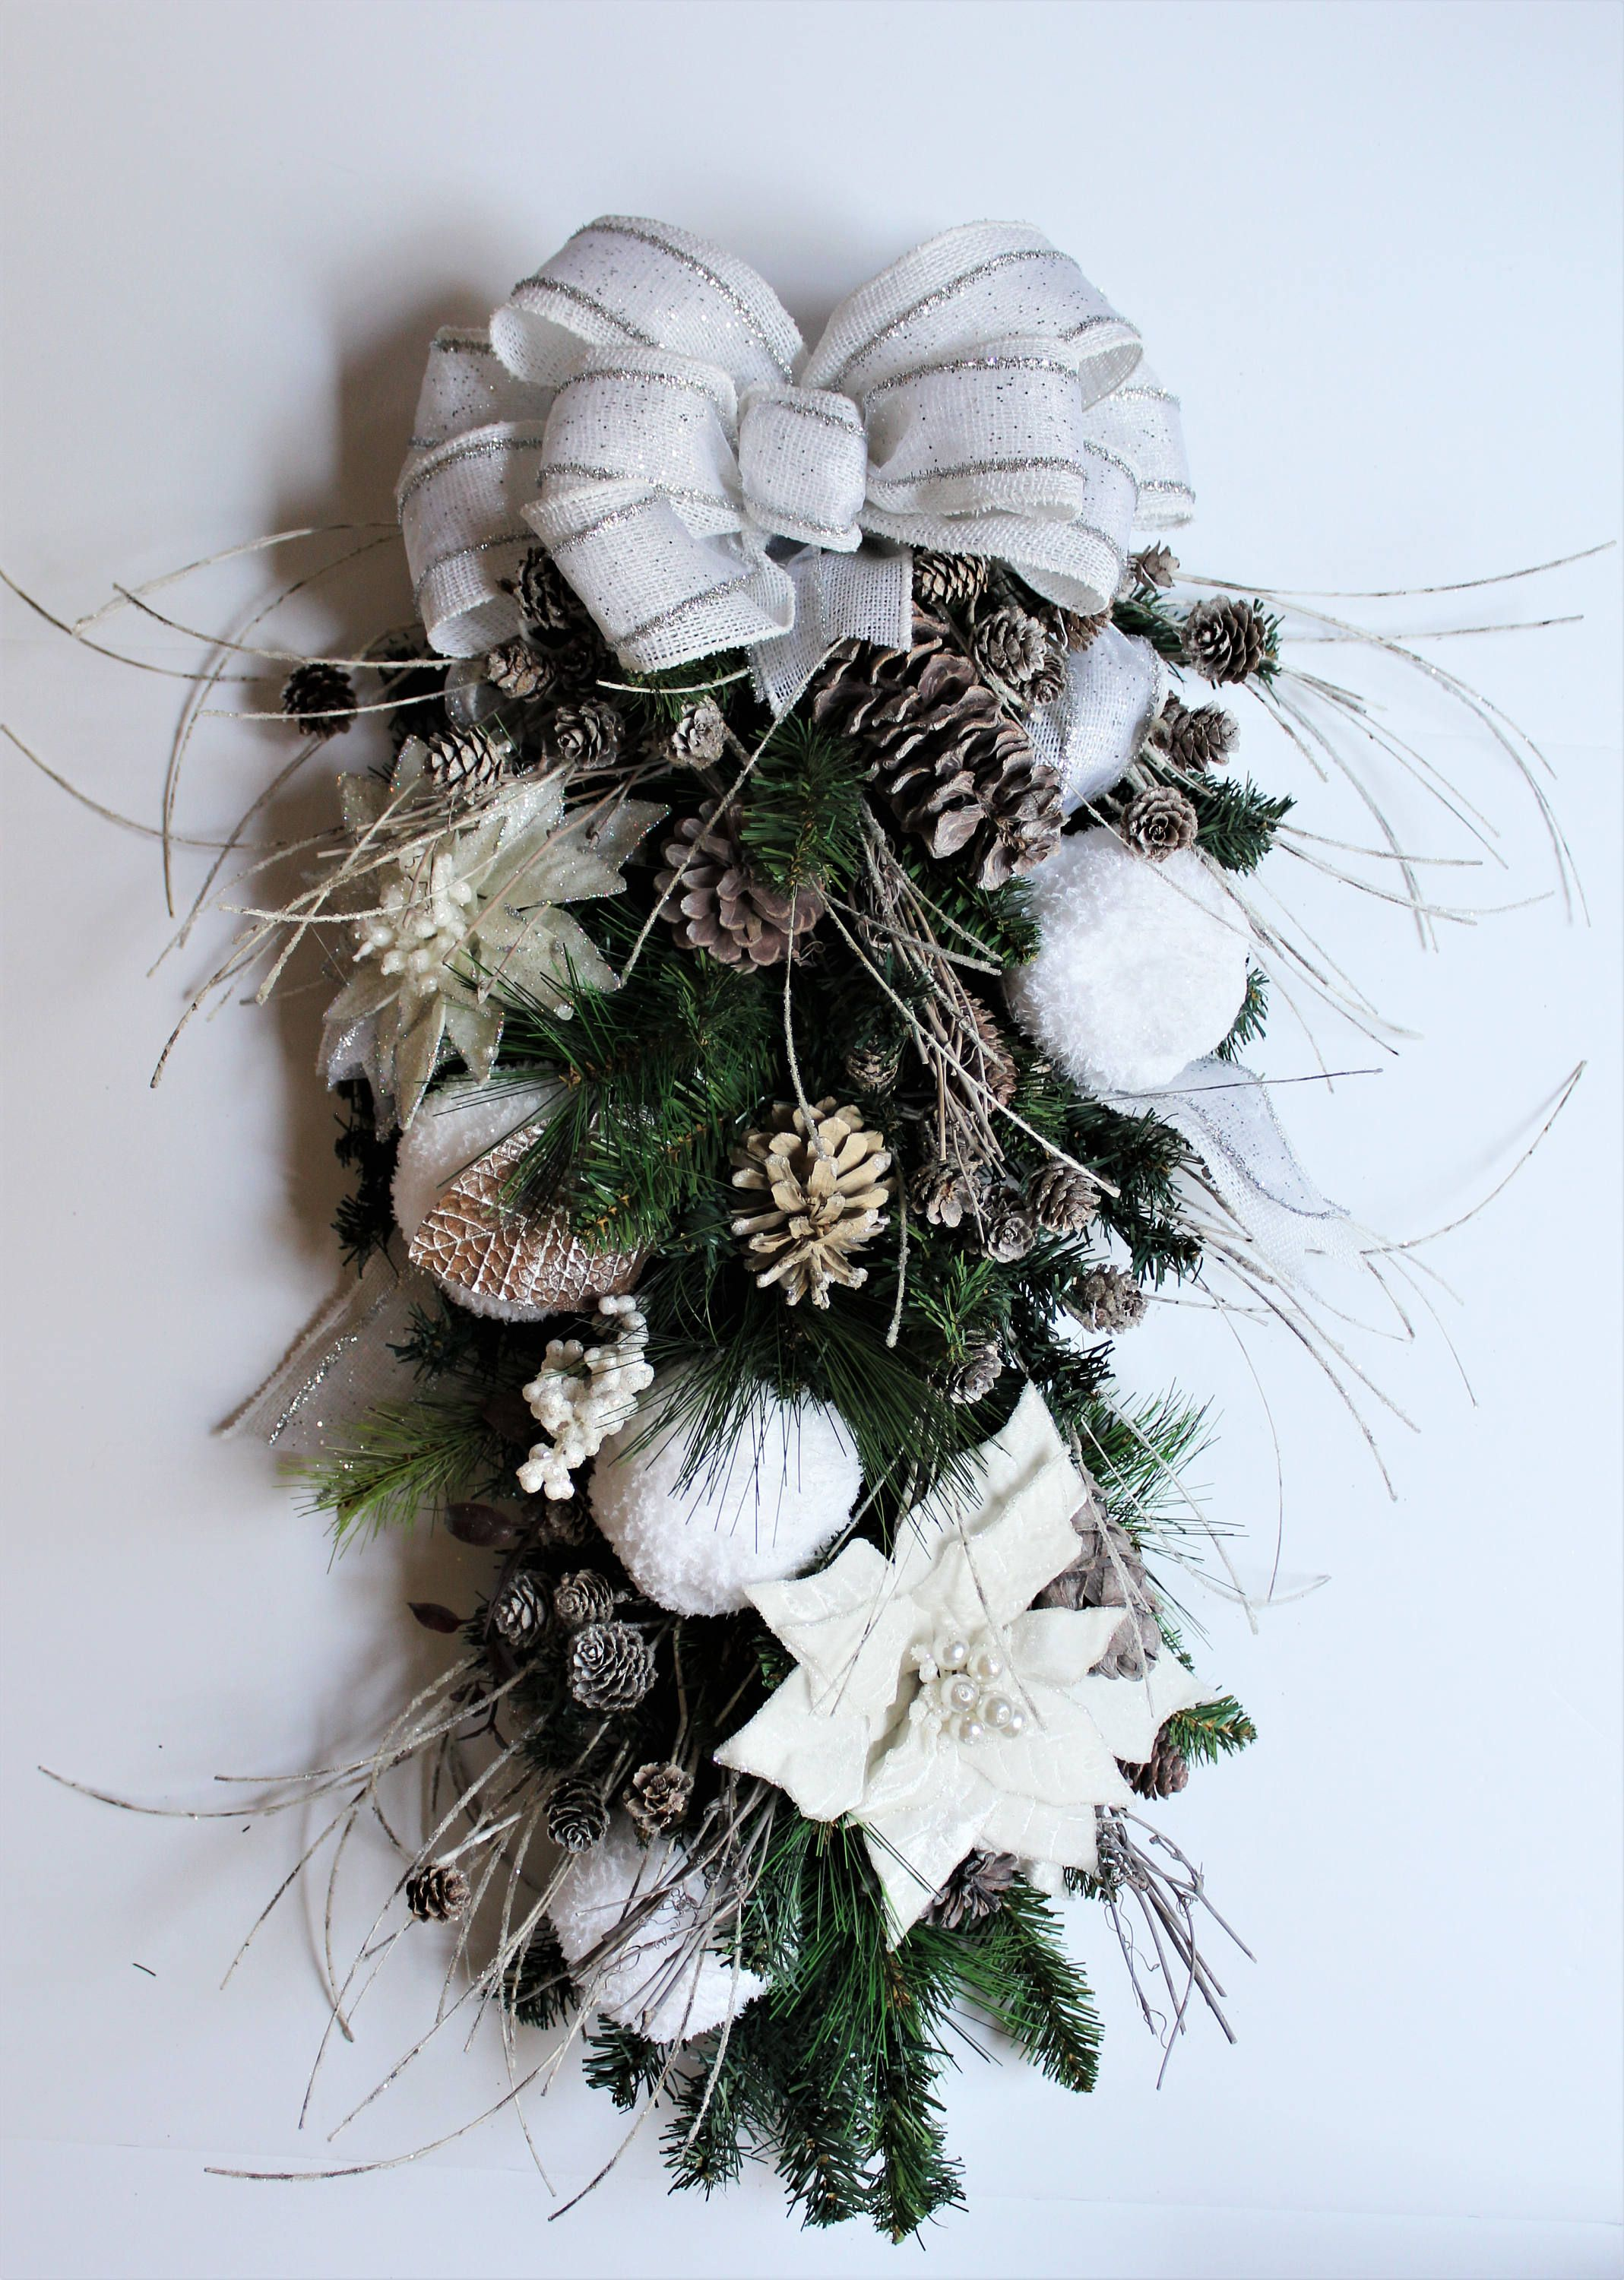 decor next and tree for red leaf christmas decorations mantel the white decoration try decorating ornaments cedar luxury ideas centerpiece with homemade these